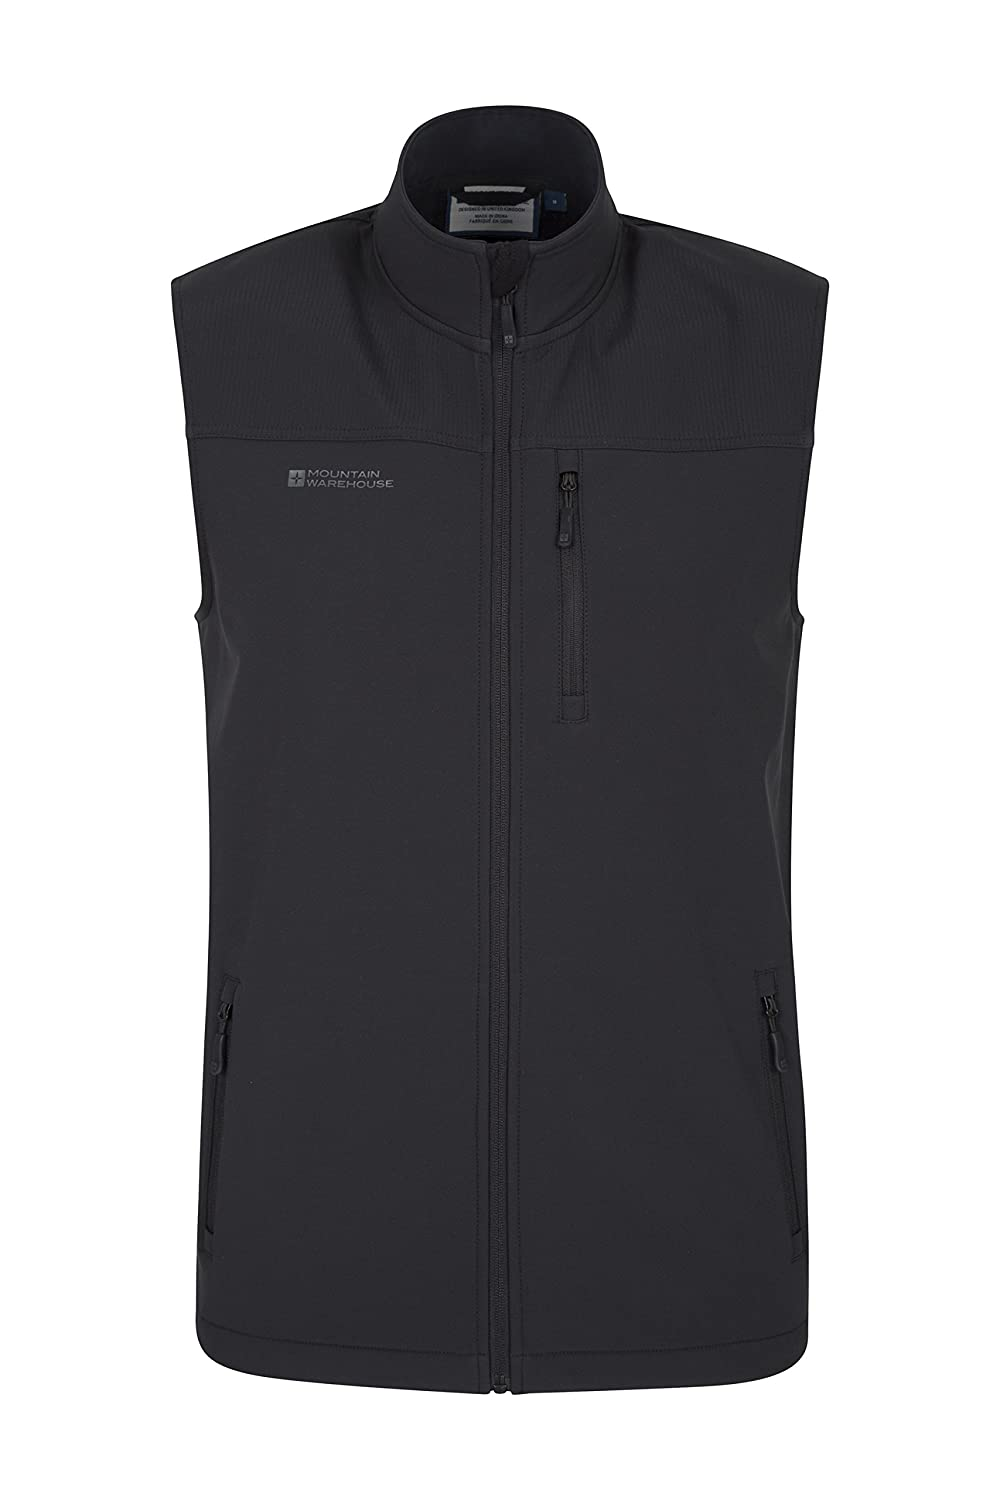 Mountain Warehouse Grasmere Mens Gilet - Lightweight Body Warmer, Water Resistant Outdoor Jacket, Breathable Running Vest Gilet, Pockets - for Winter Cycling & Hiking